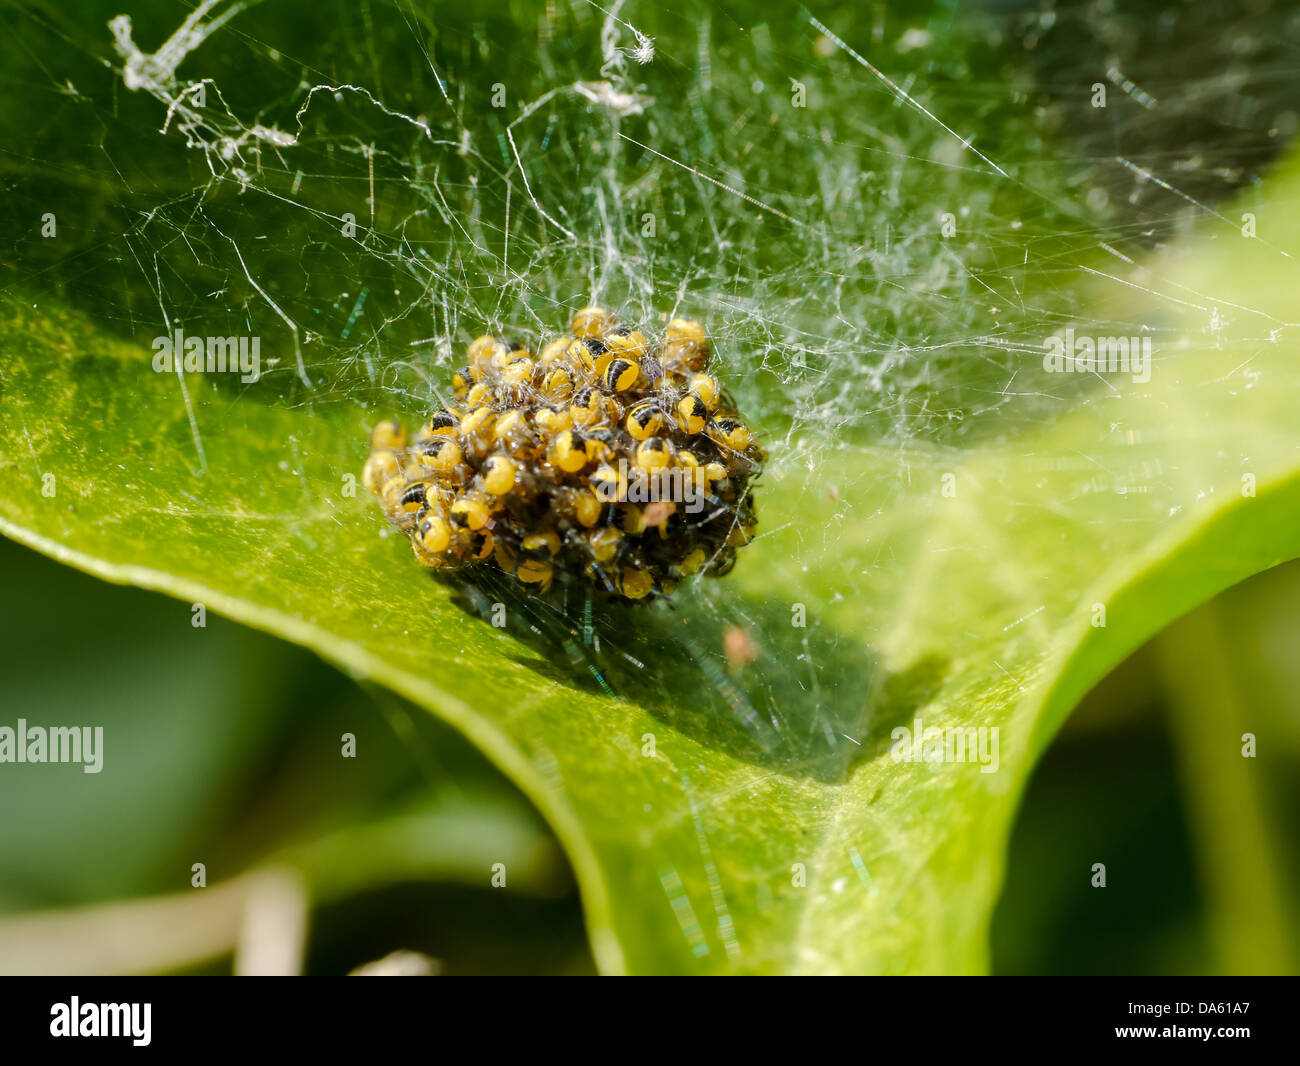 A nest of baby garden spiderlings on a leaf - Stock Image